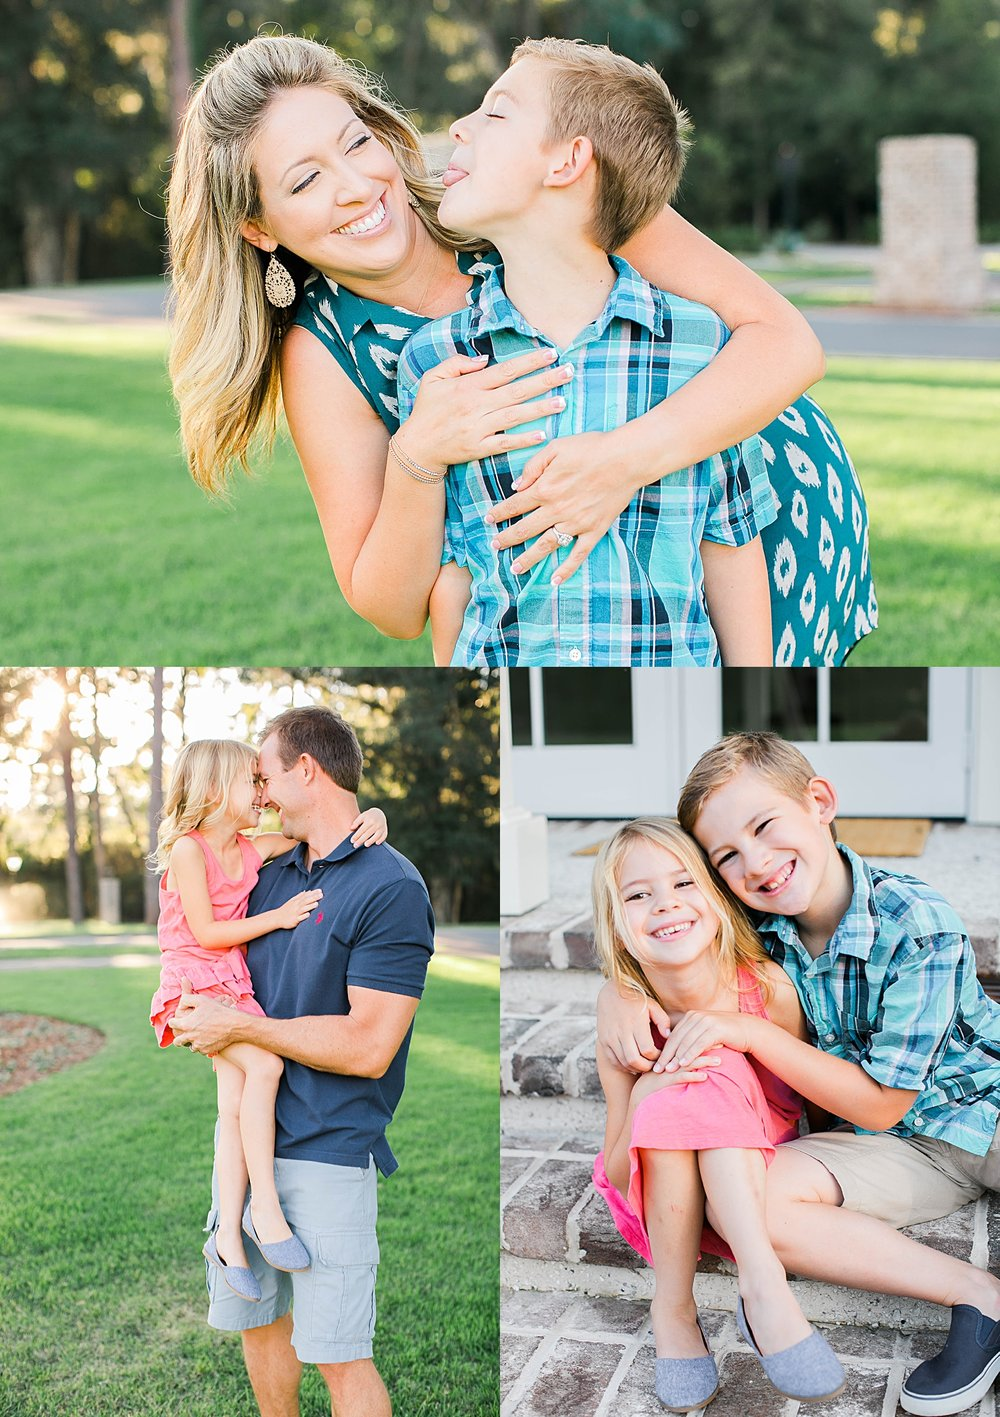 palmetto-bluff-south-carolina-family-photographer-jb-marie-photography